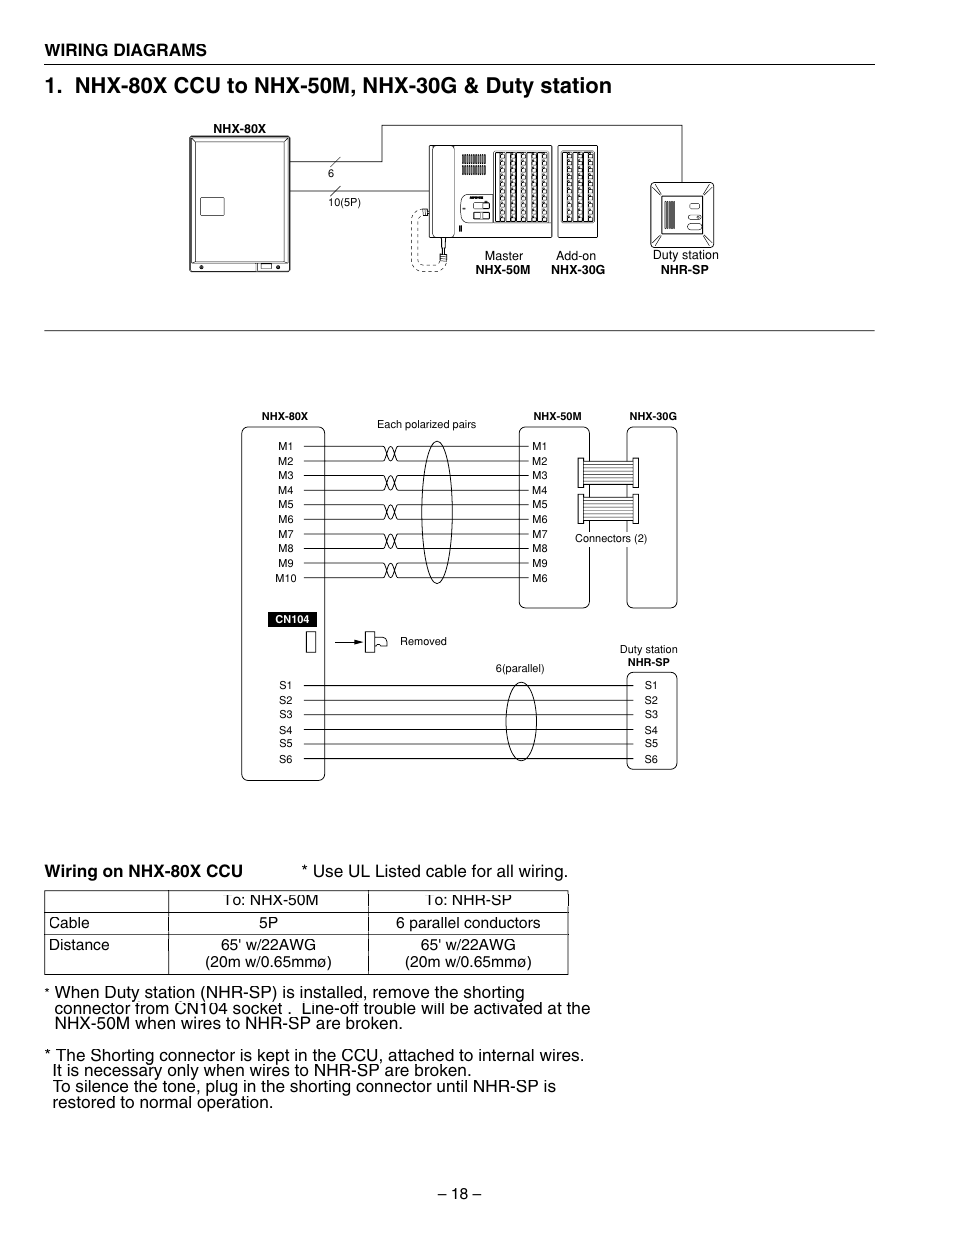 audiobahn striker pro 12 inch subwoofer diagram on how to wire an rh leaseletter info